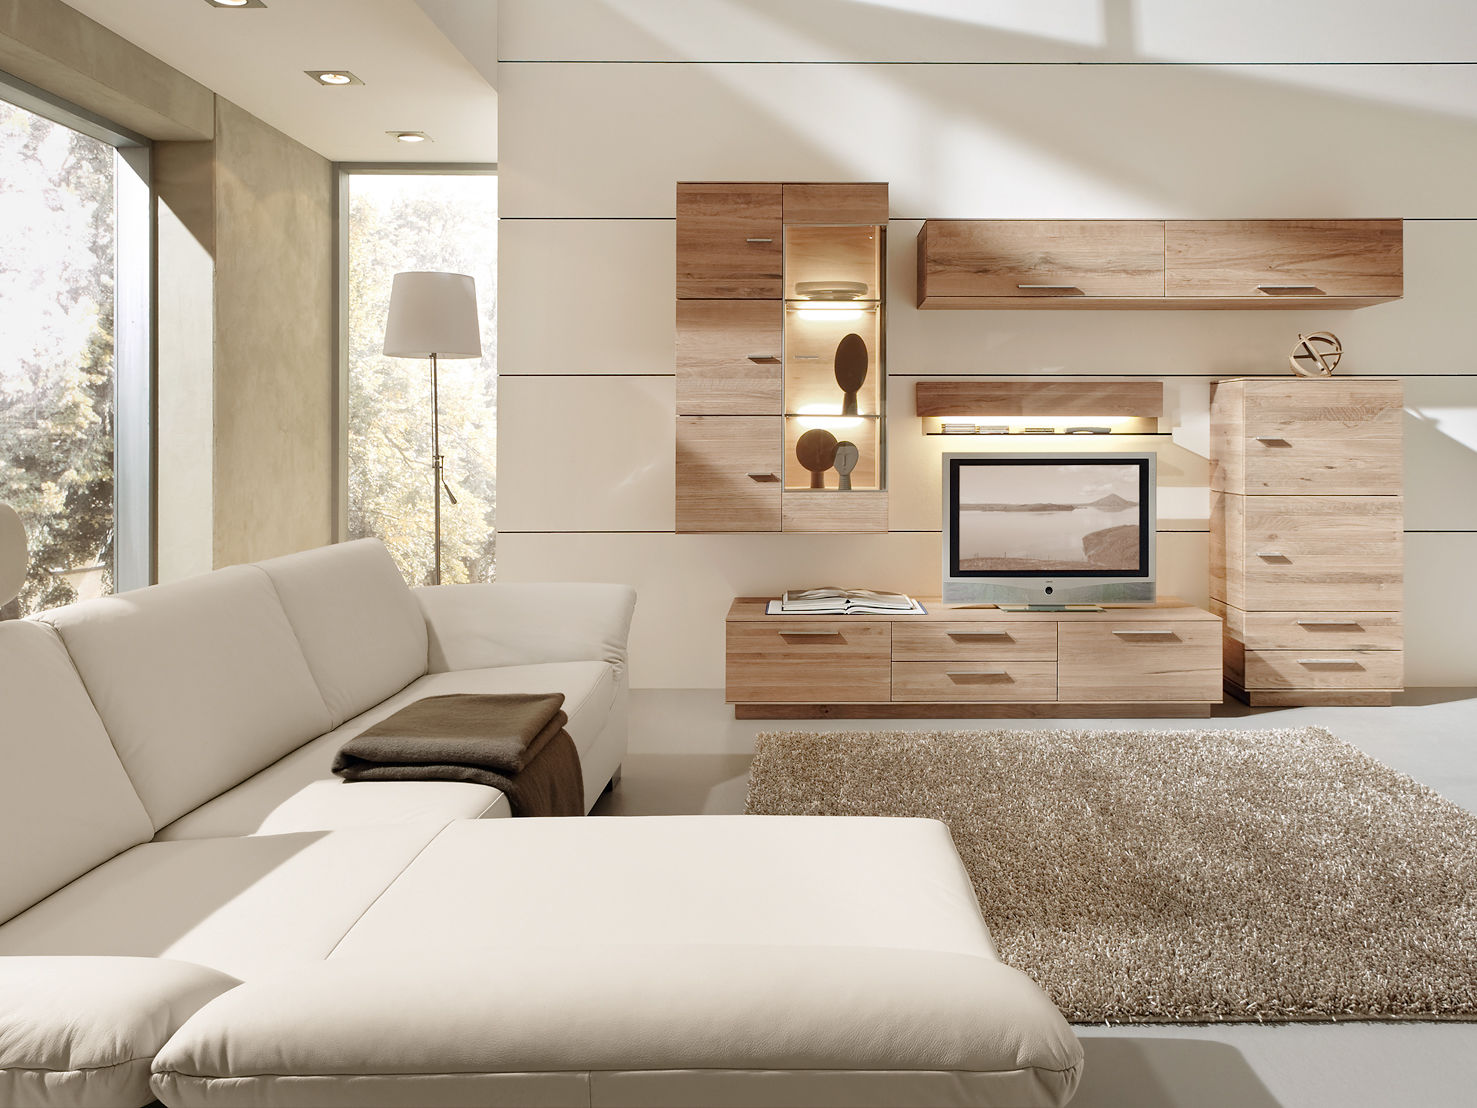 helles holz im trend zuhause wohnen. Black Bedroom Furniture Sets. Home Design Ideas